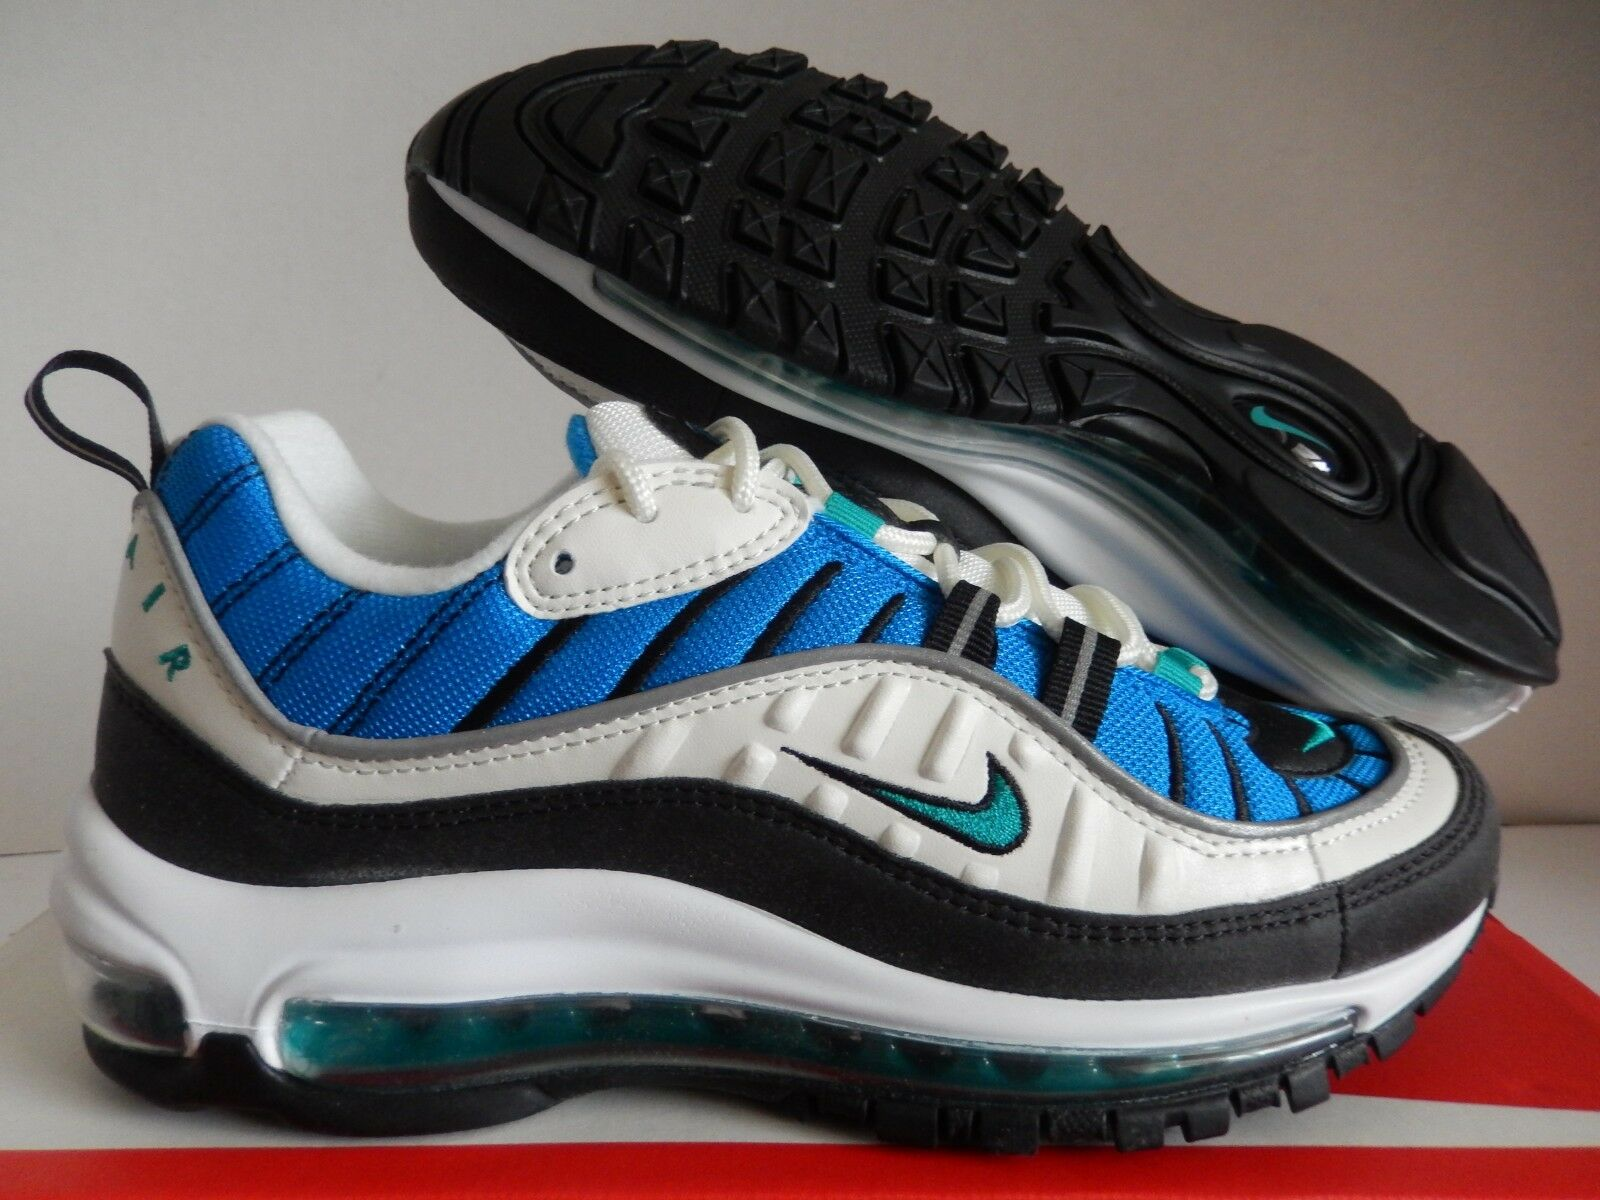 WMNS NIKE AIR MAX 98 SAIL-RADIANT EMERALD BLUE SZ 8 [AH6799-106]